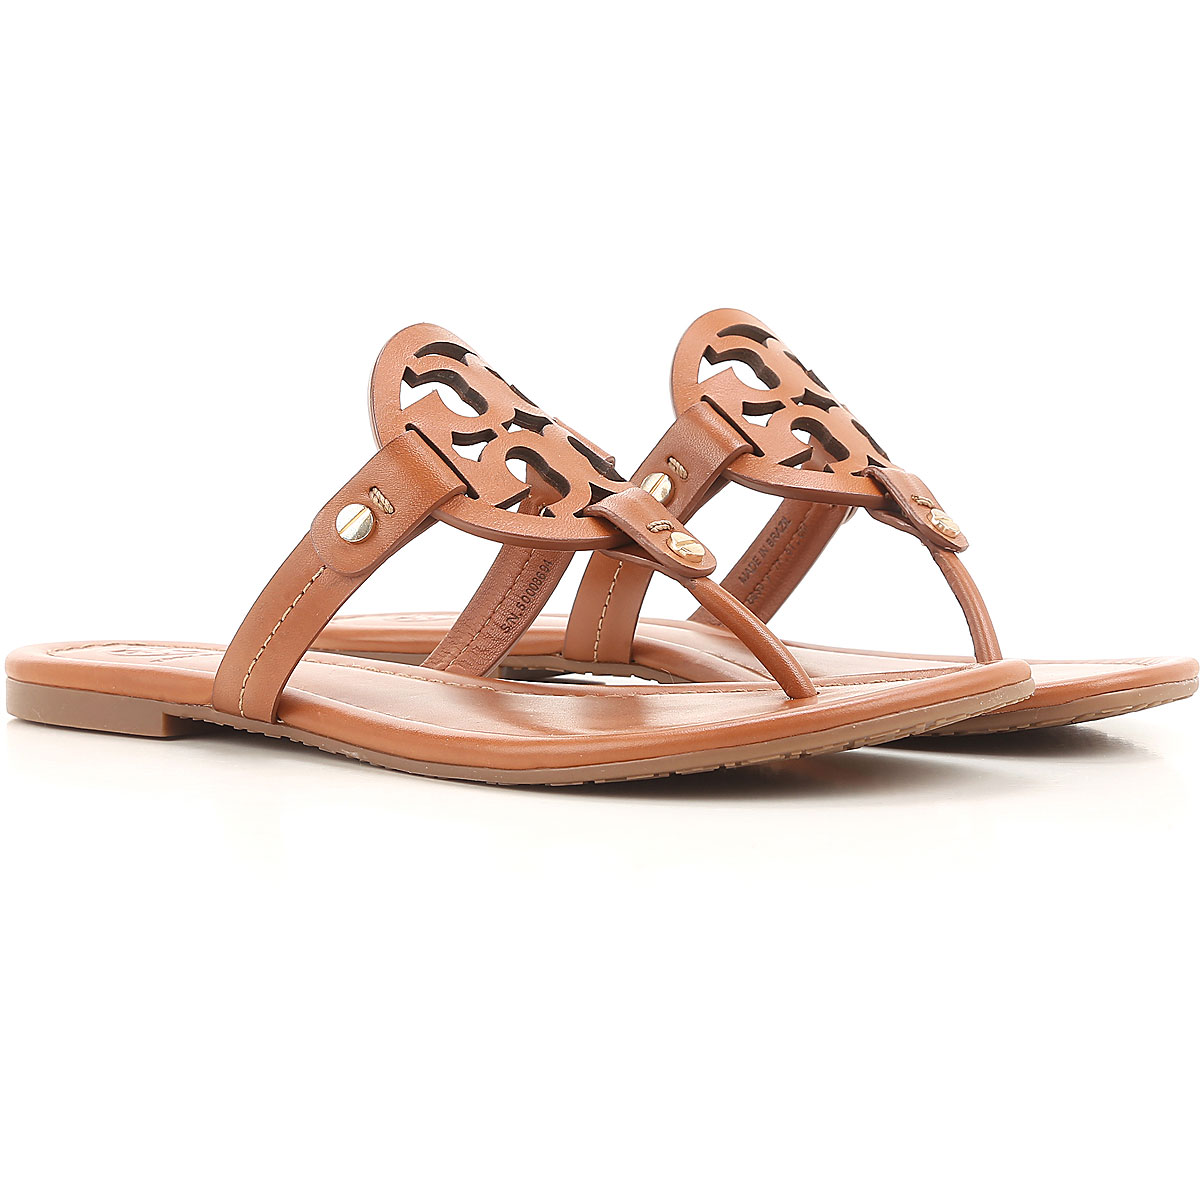 Tory Burch Sandals for Women, Leather Brown, Leather, 2017, 10 8.5 9 USA-436176